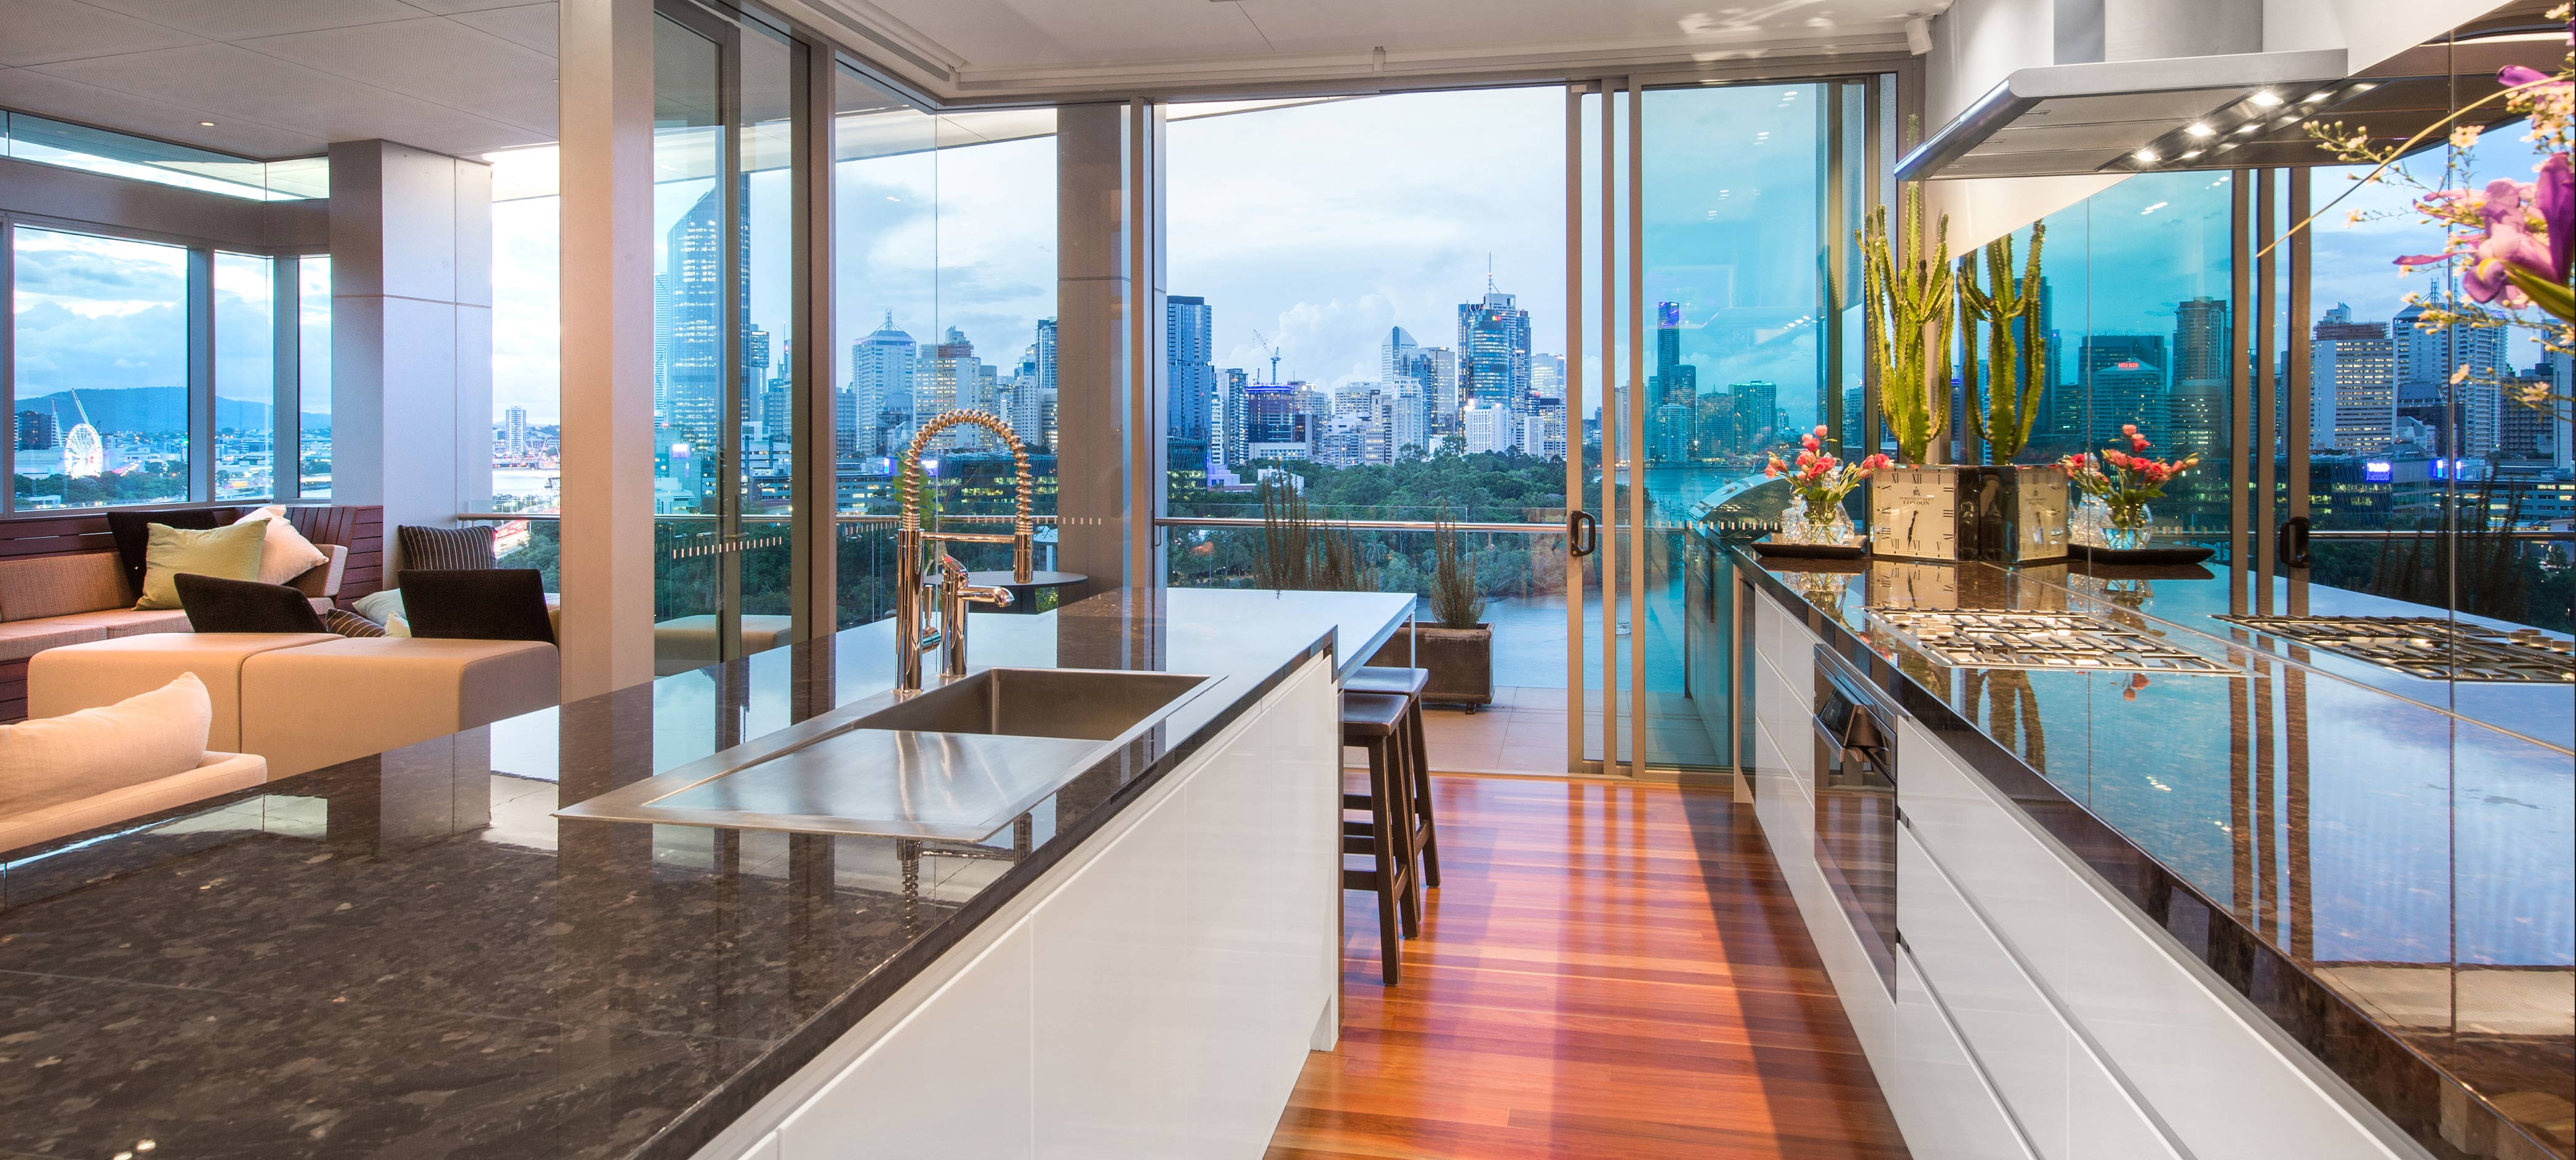 Woodstock Cabinet Makers - Brisbane Kitchens and Cabinets